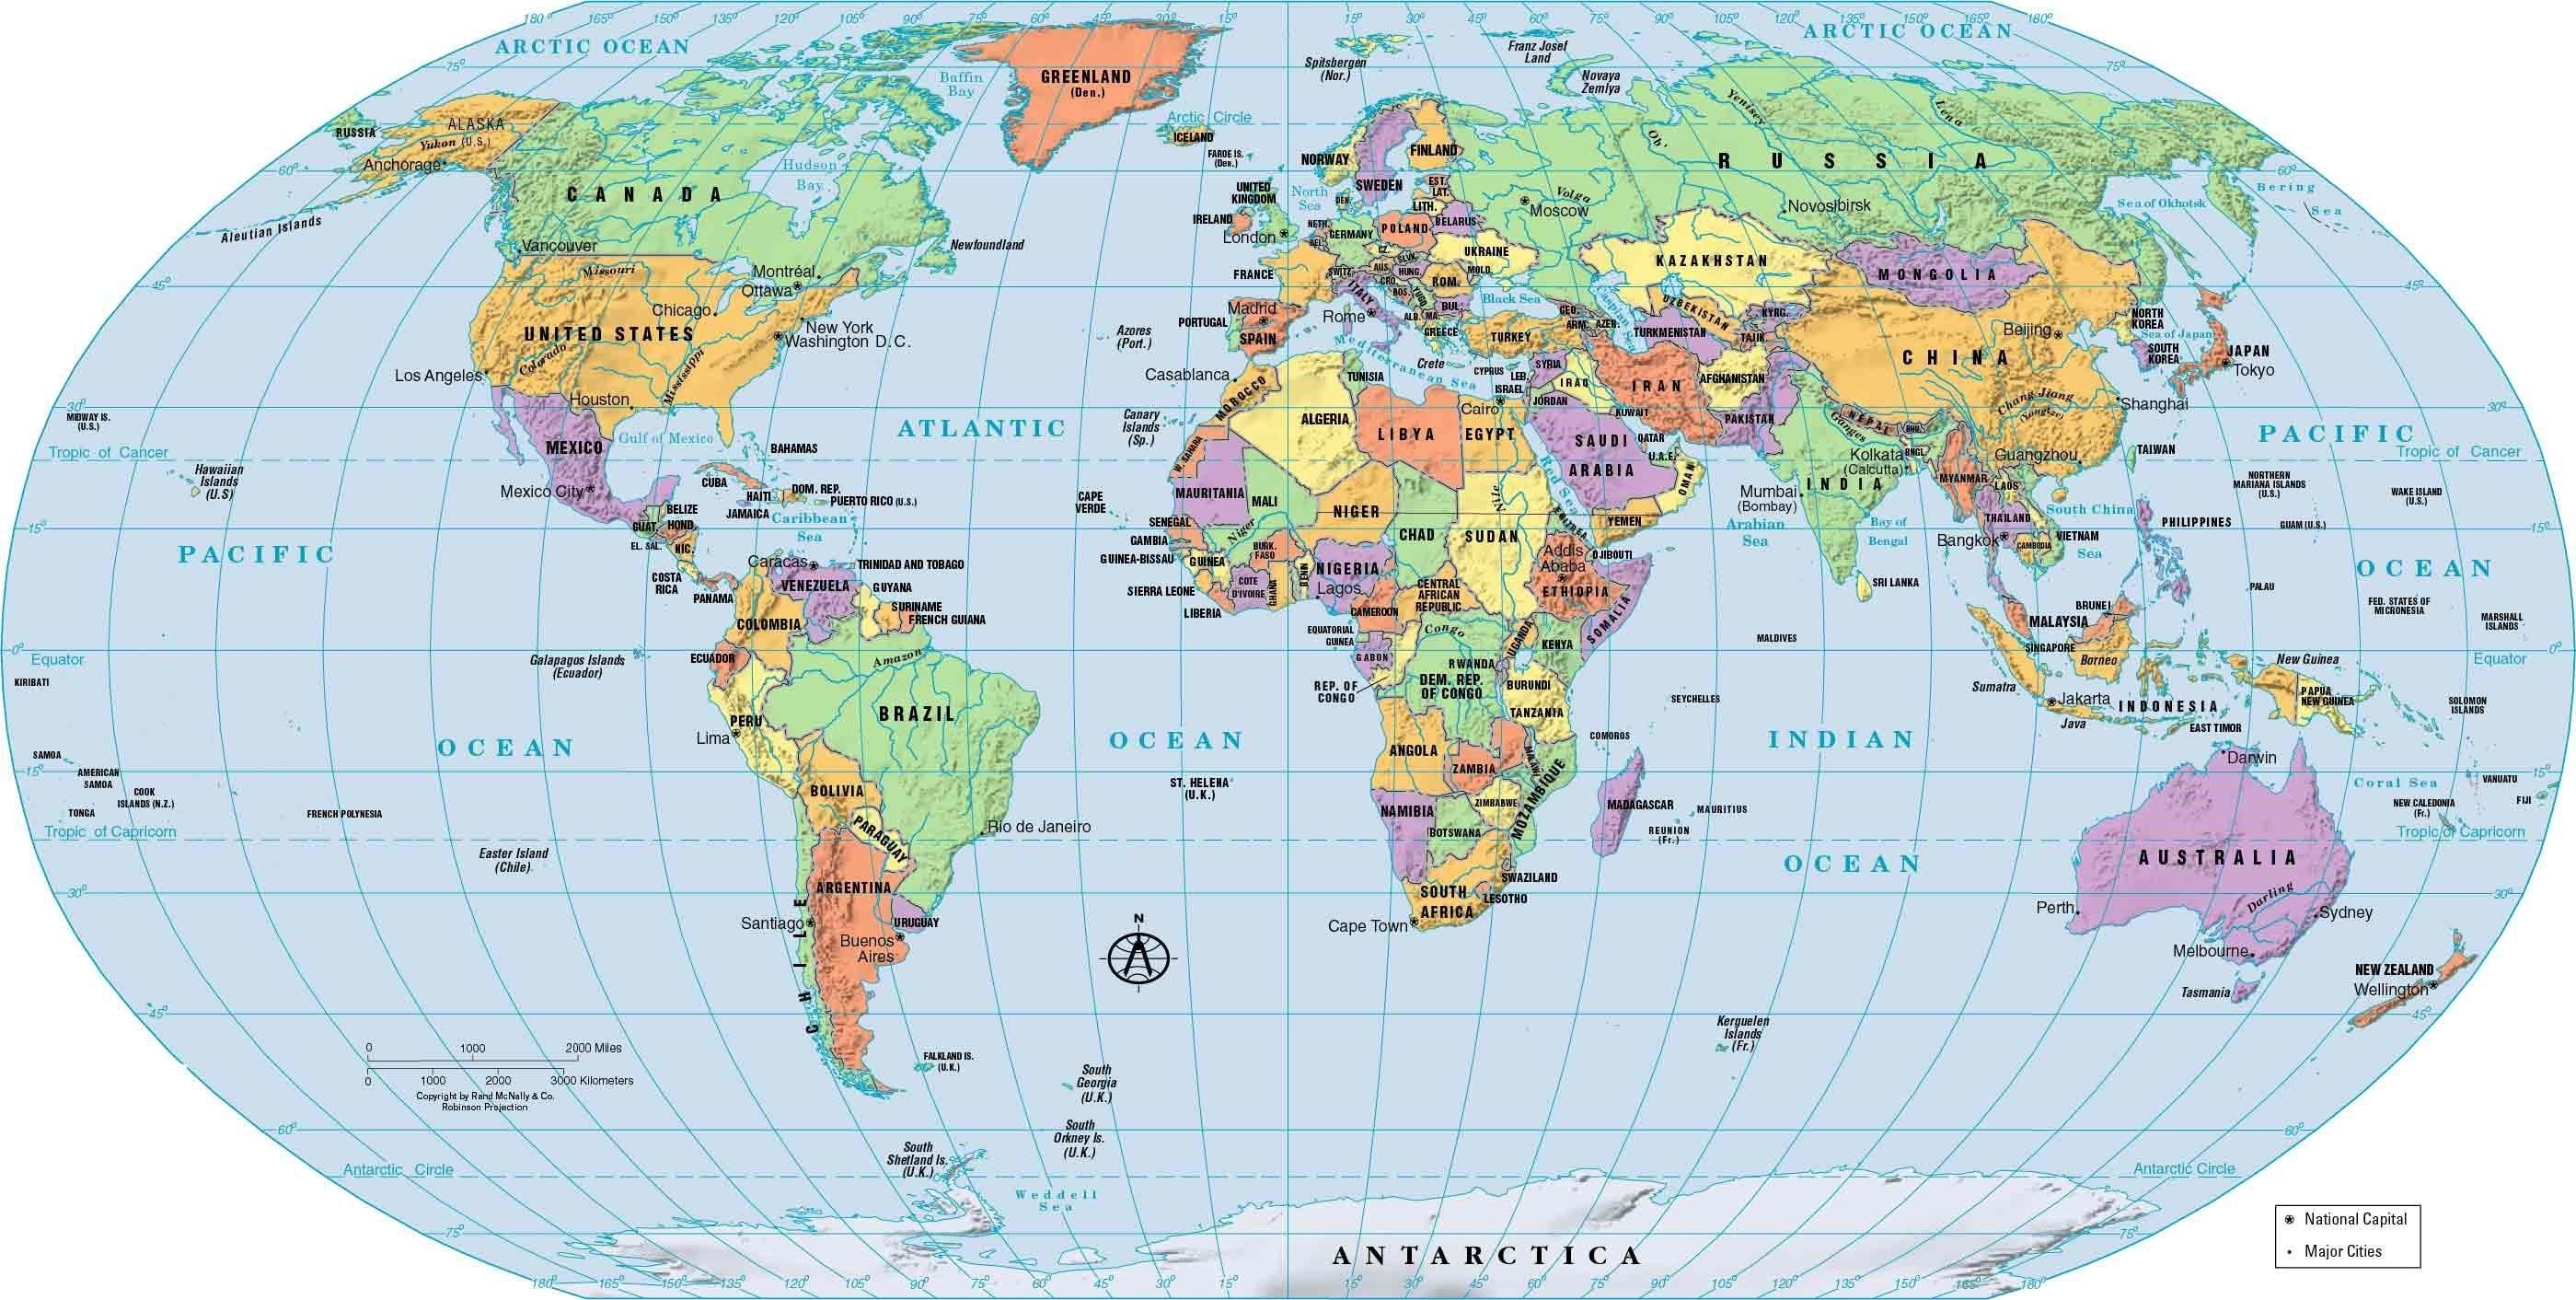 Polictical World Map.Political World Map High Resolution Image World Map Wallpapers High